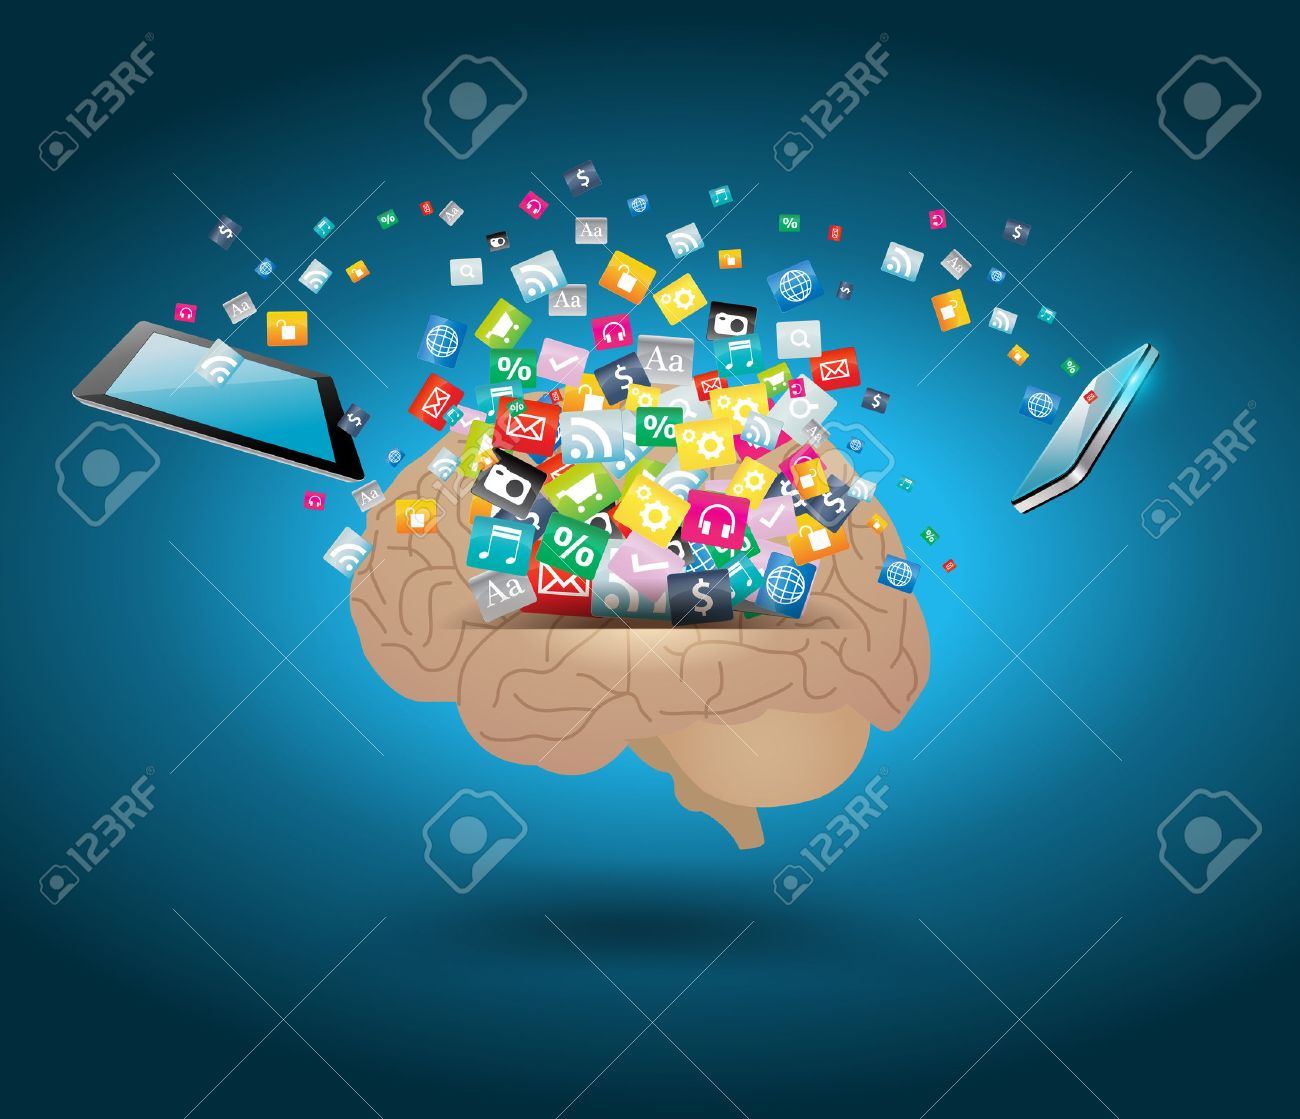 Vector creative cloud of colorful application icon with brain idea concept Stock Vector - 22962756